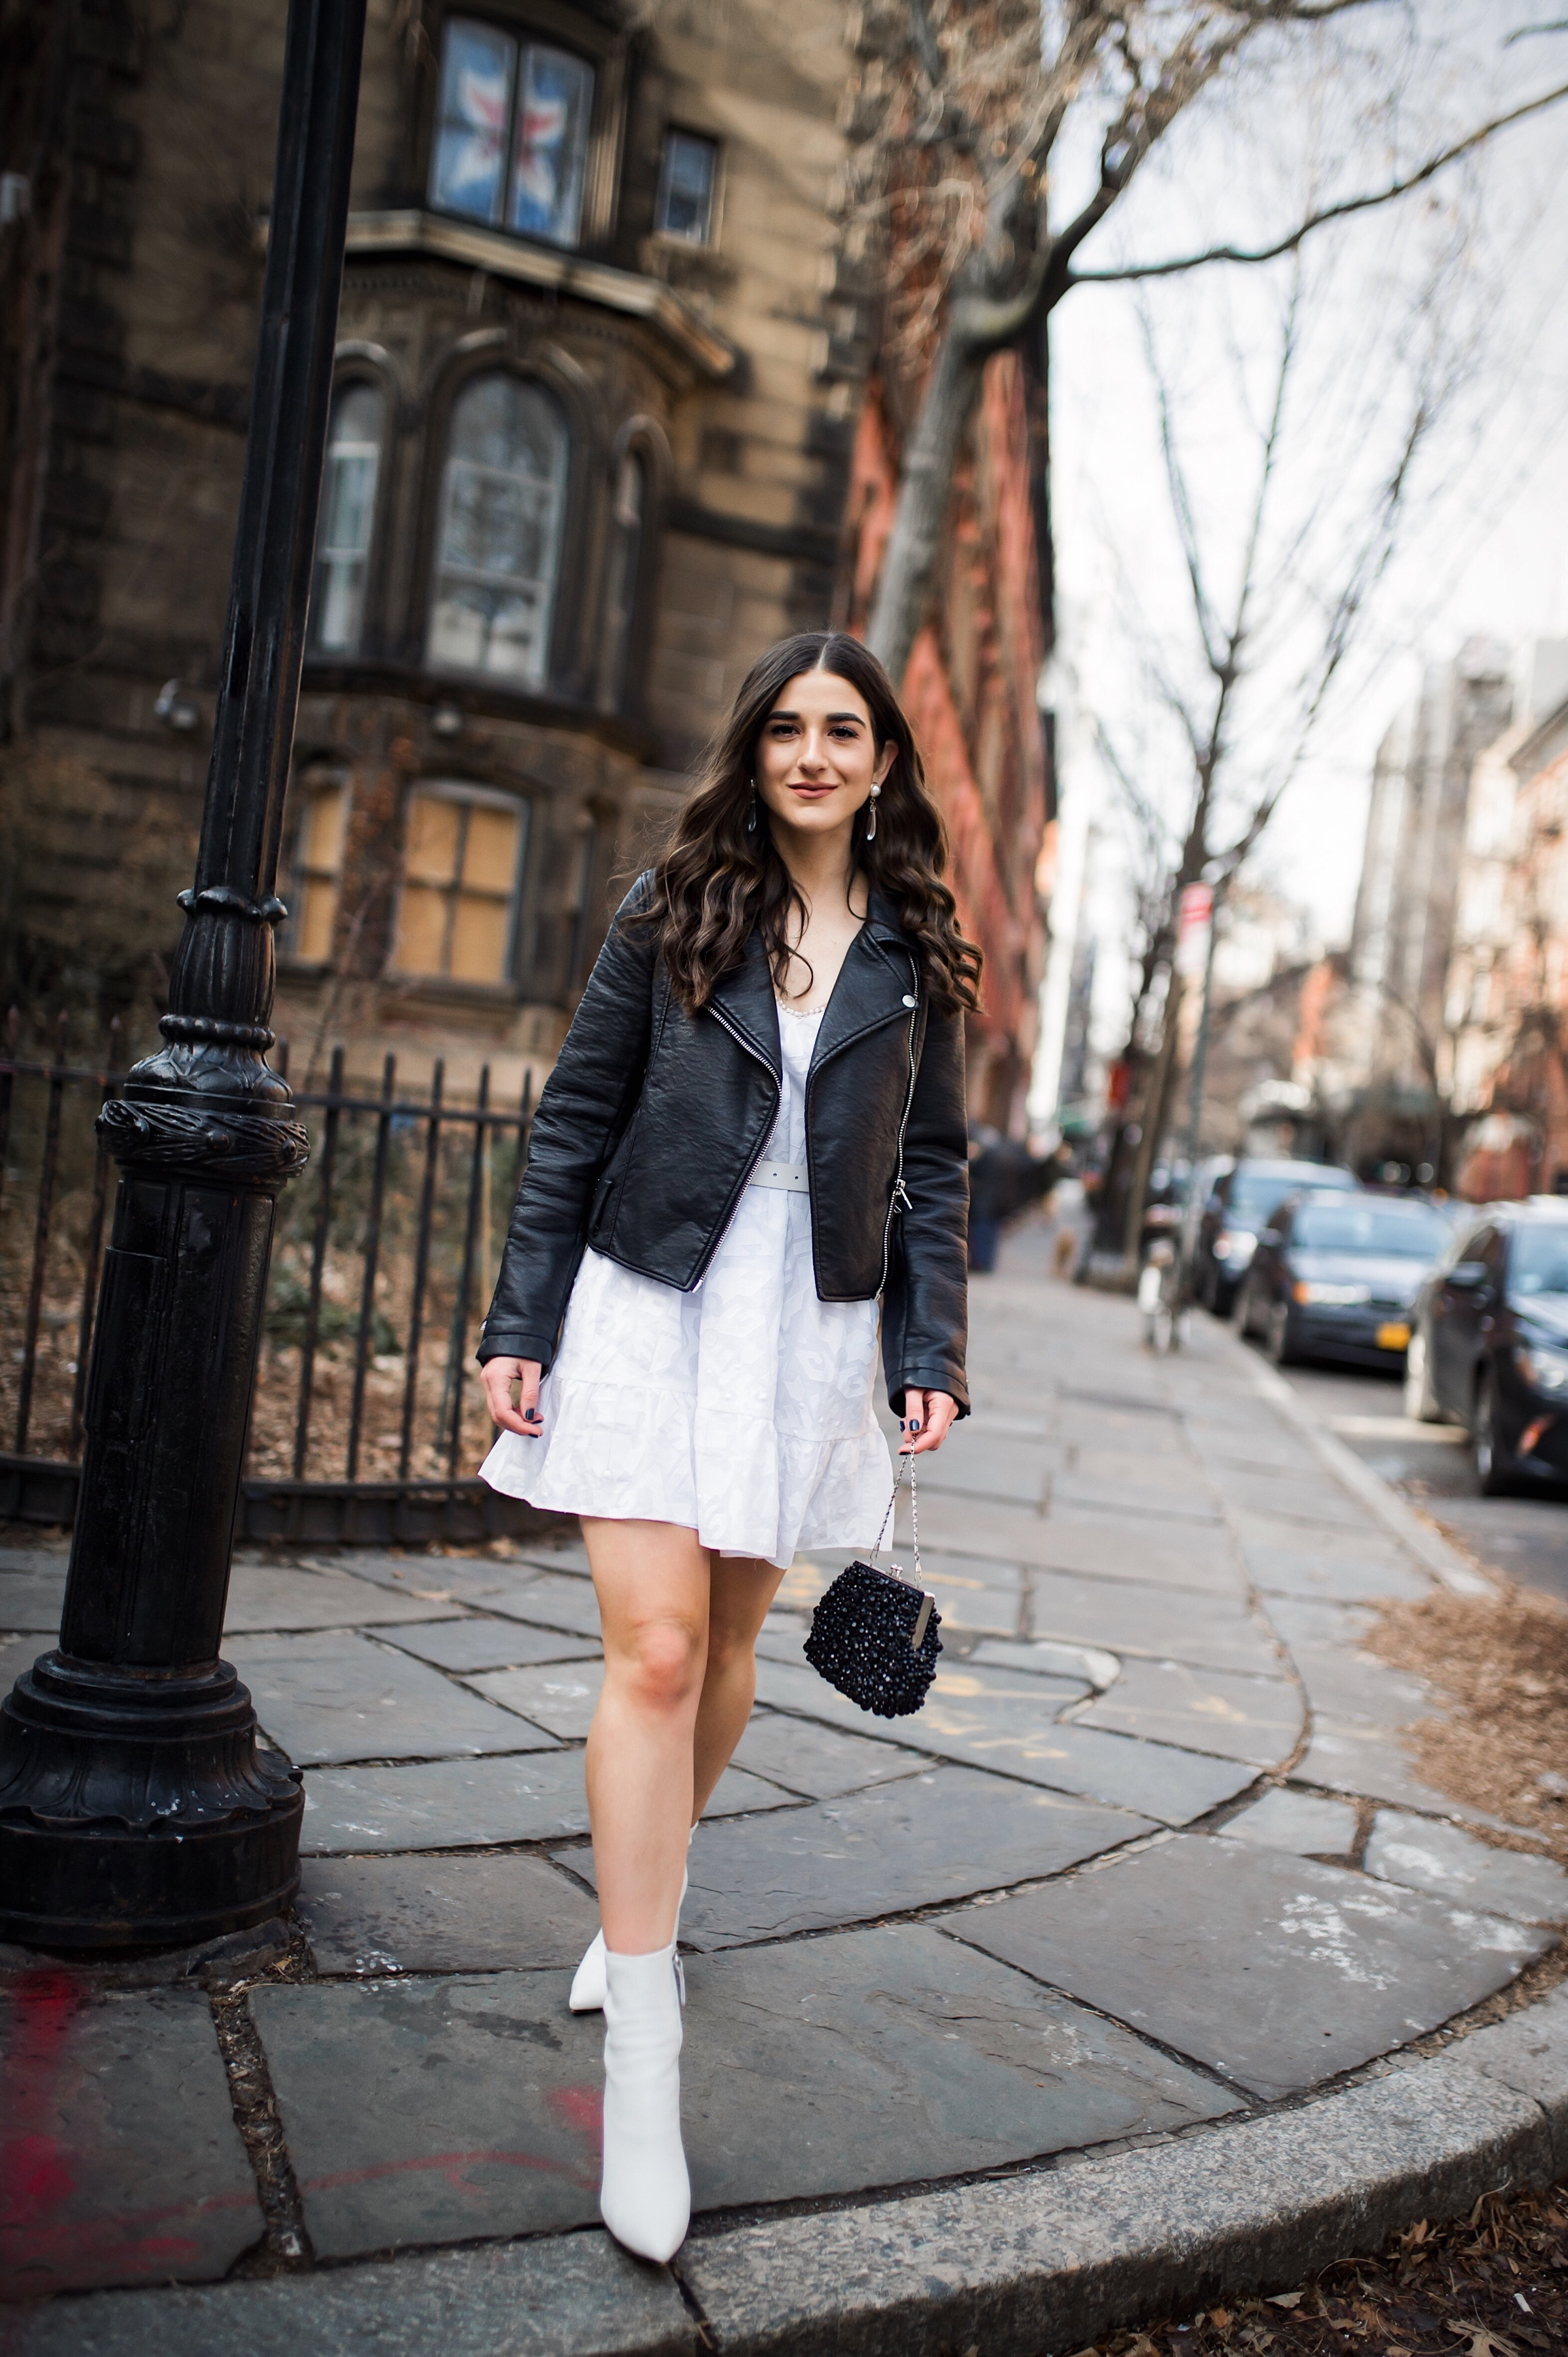 5 Things I Wish Brands Knew White Dress Leather Jacket Esther Santer Fashion Blog NYC Street Style Blogger Outfit OOTD Trendy Shopping Girl What How To Wear Urban Outfitters ASOS Belt Booties Black Beaded Clutch Long Hair Photoshoot  Stuyvesant  Shop.JPG